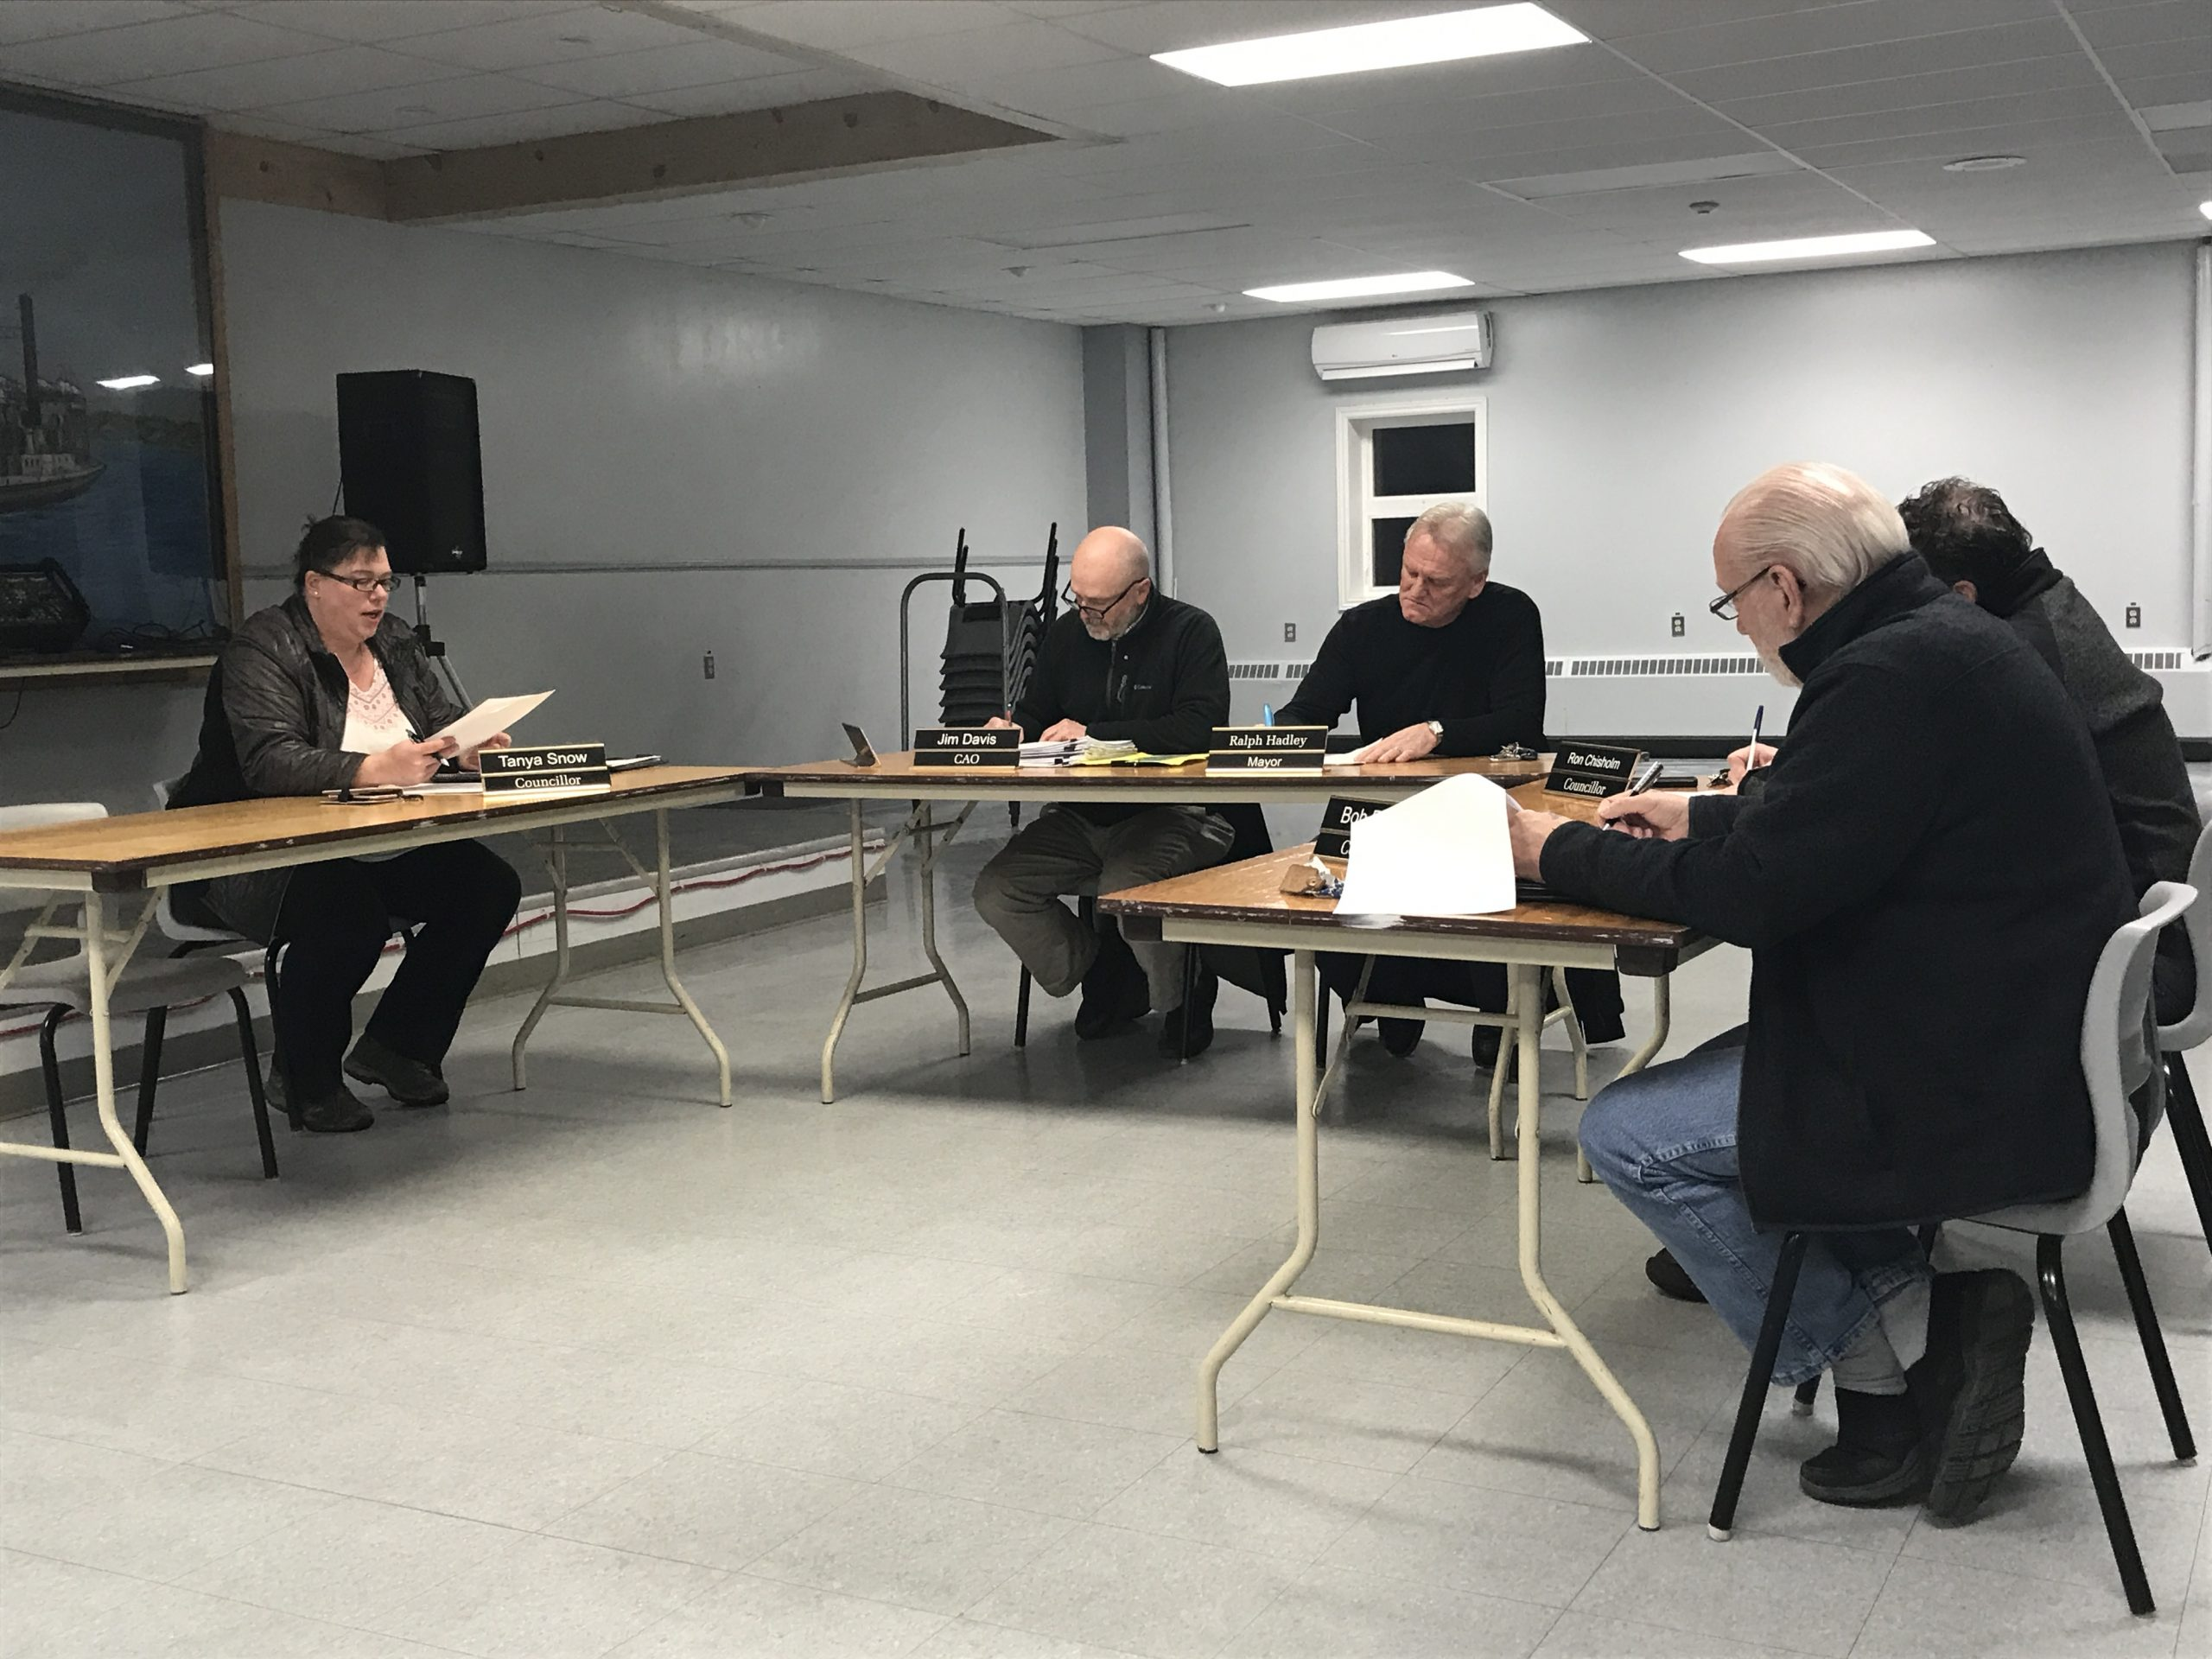 Mulgrave officials say they're concerned about taking ownership of town school